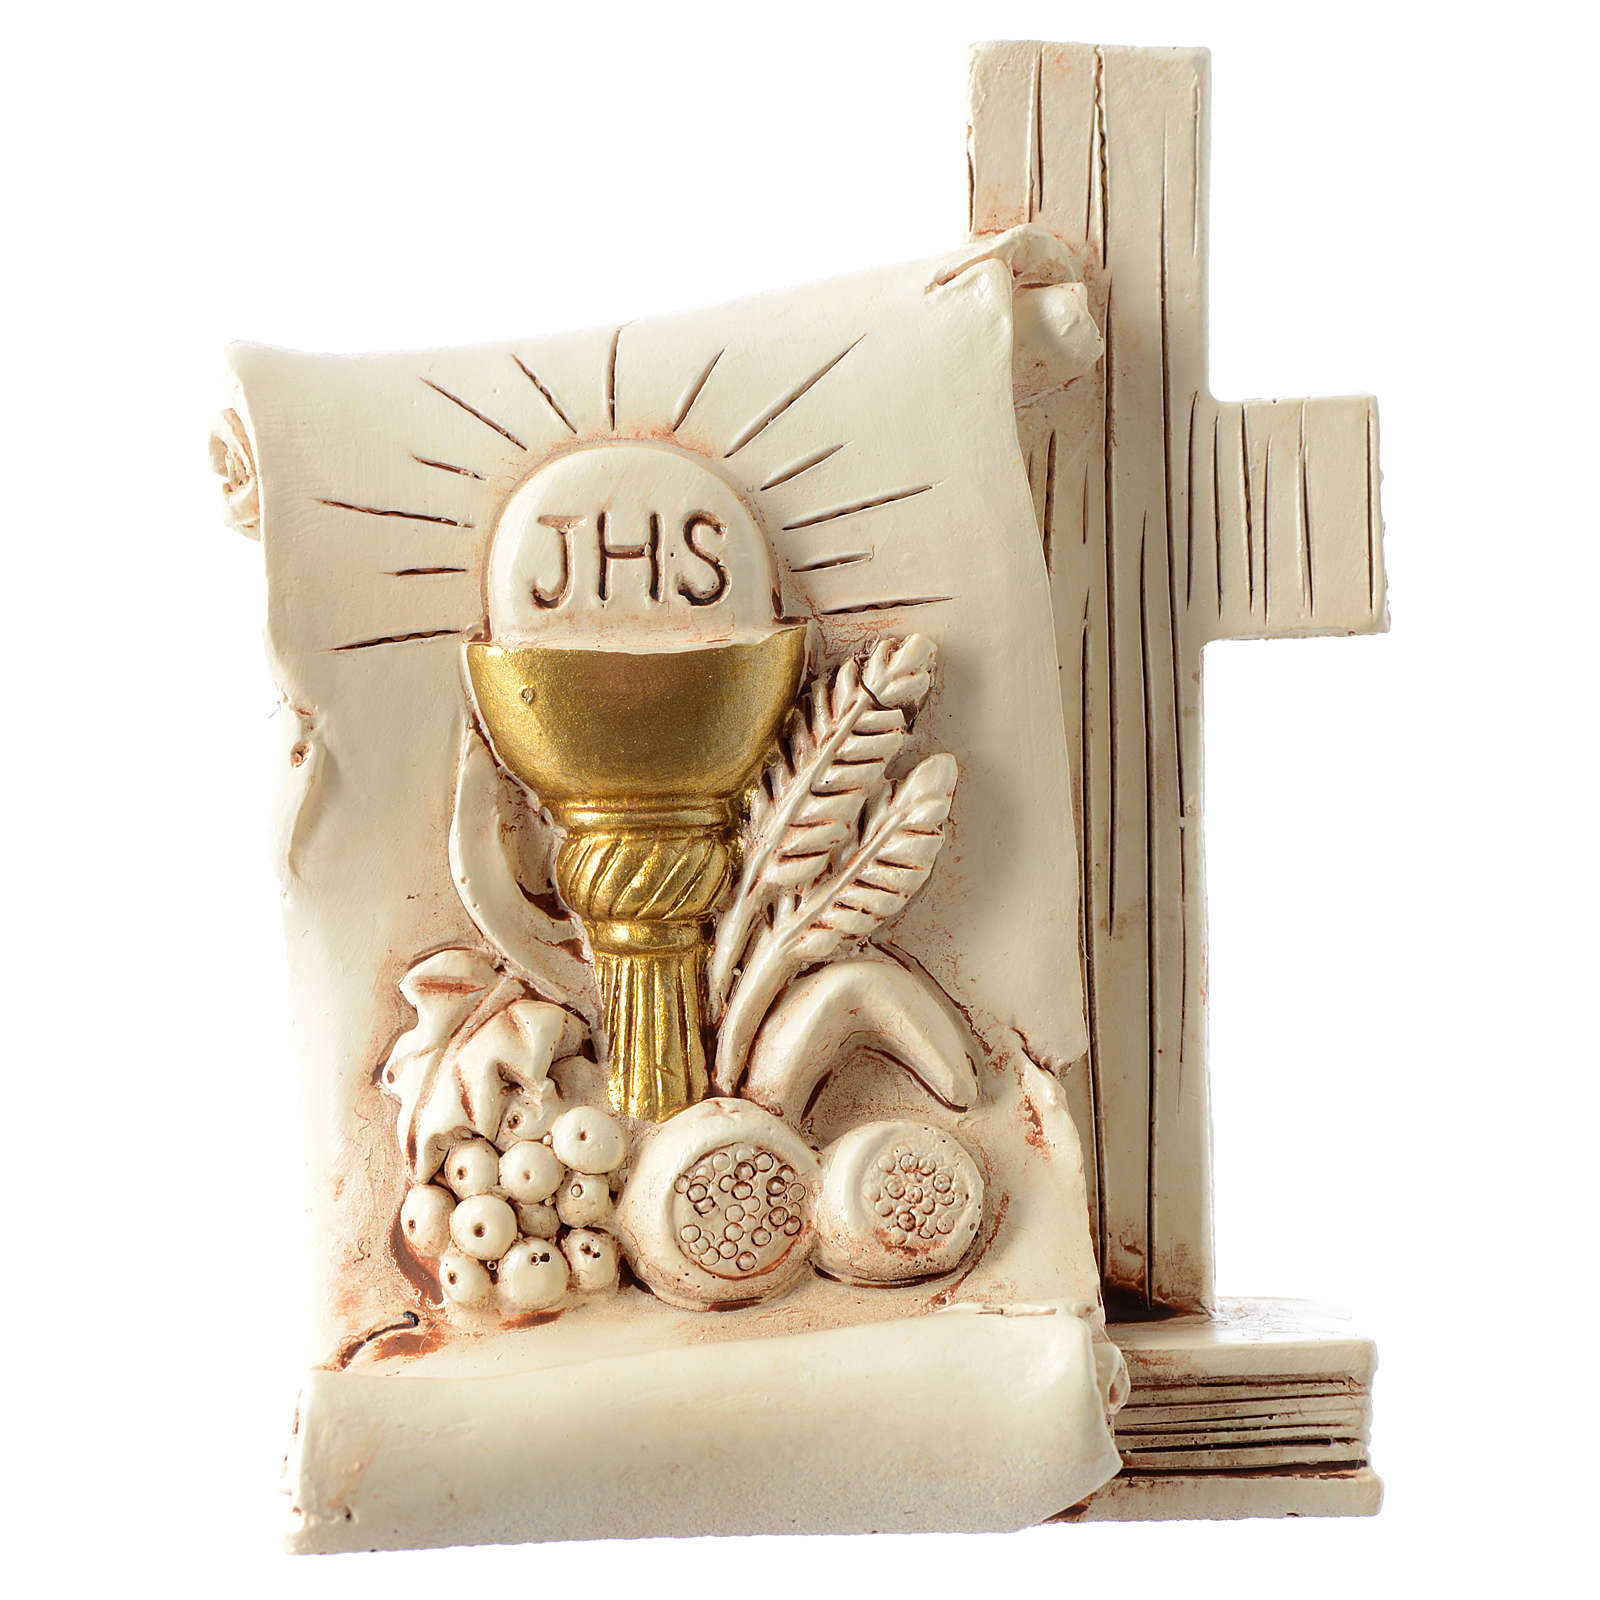 Souvenir Communion parchemin calice 6x8 cm 3